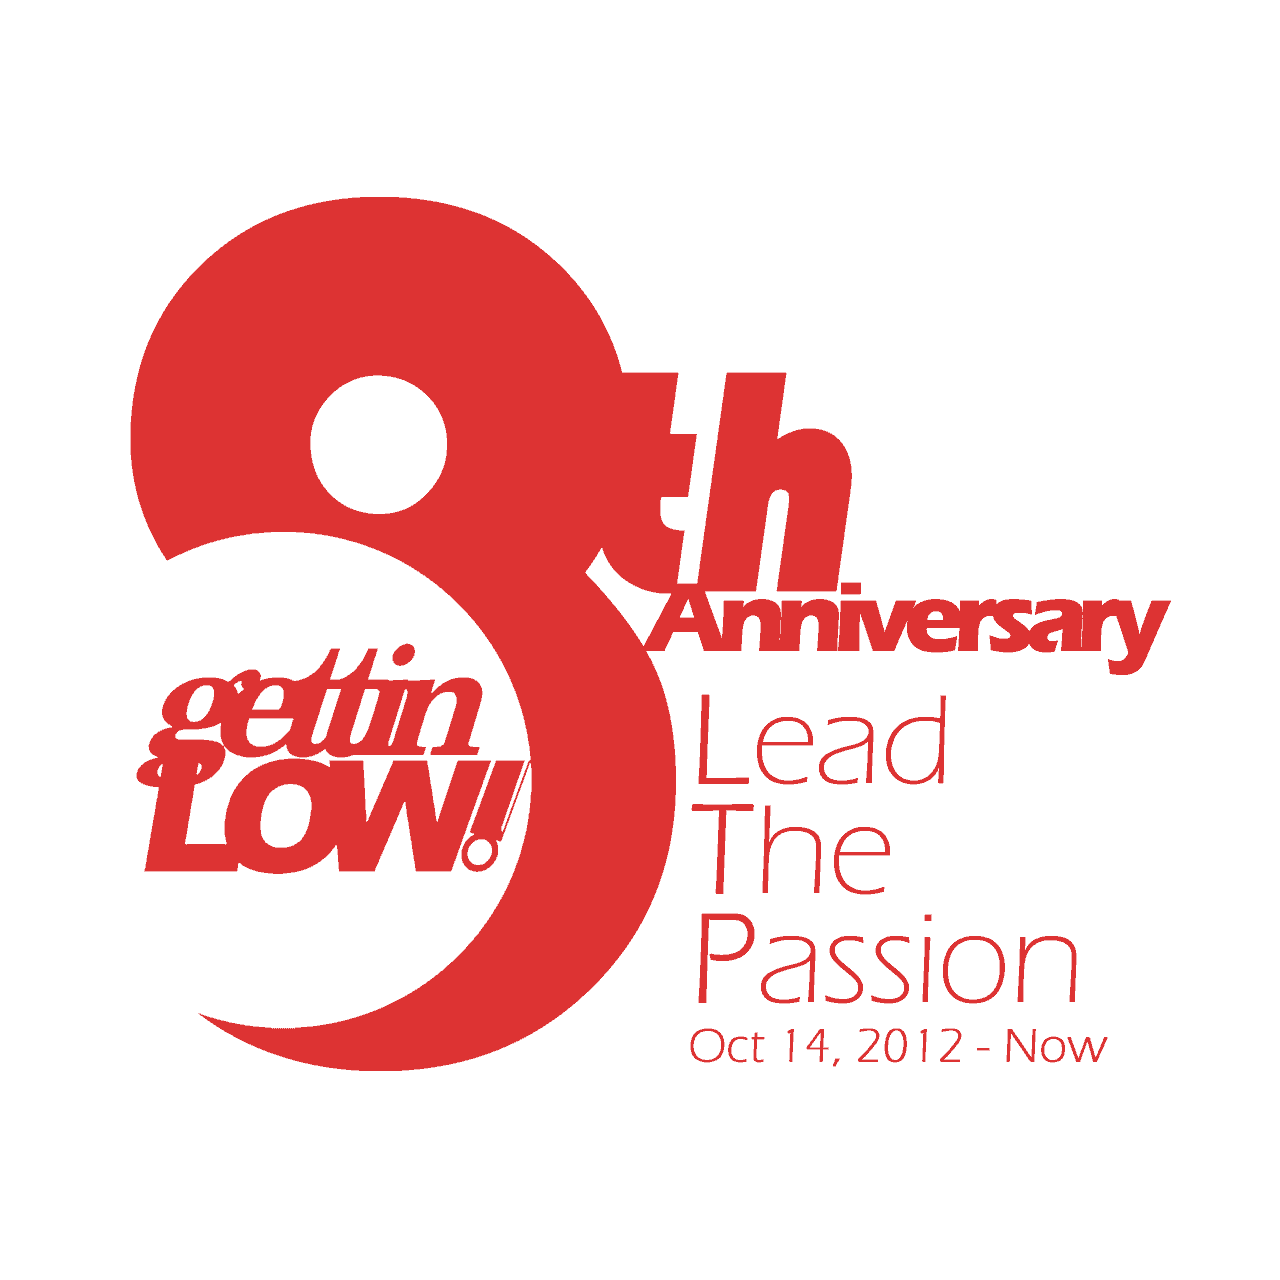 the 8th Anniversary, Lead The Passion